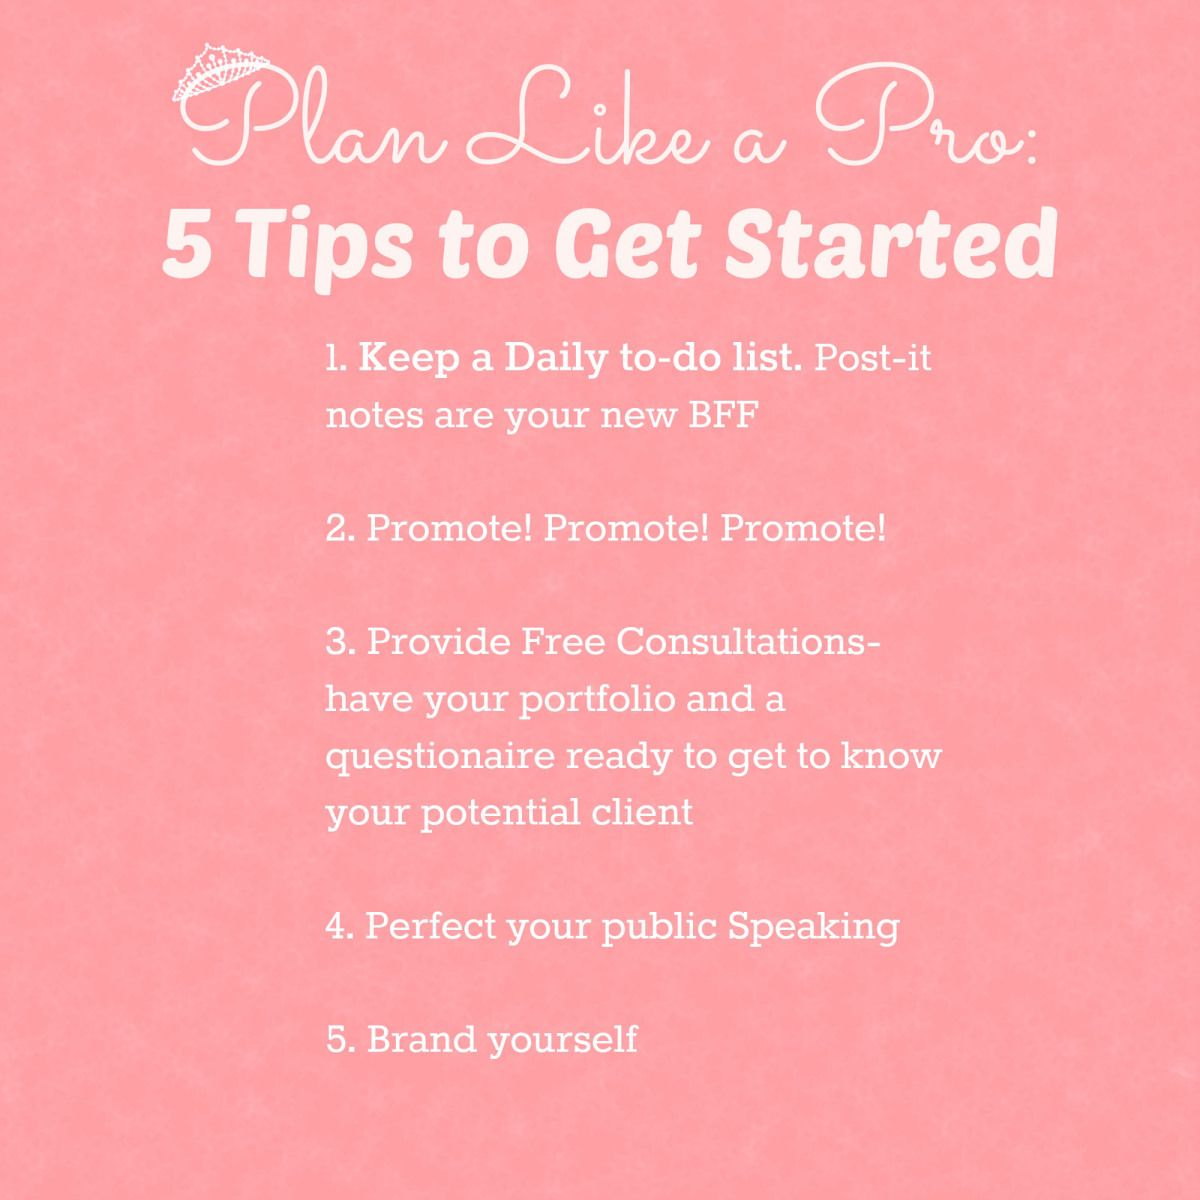 Tips to getting started in event planning